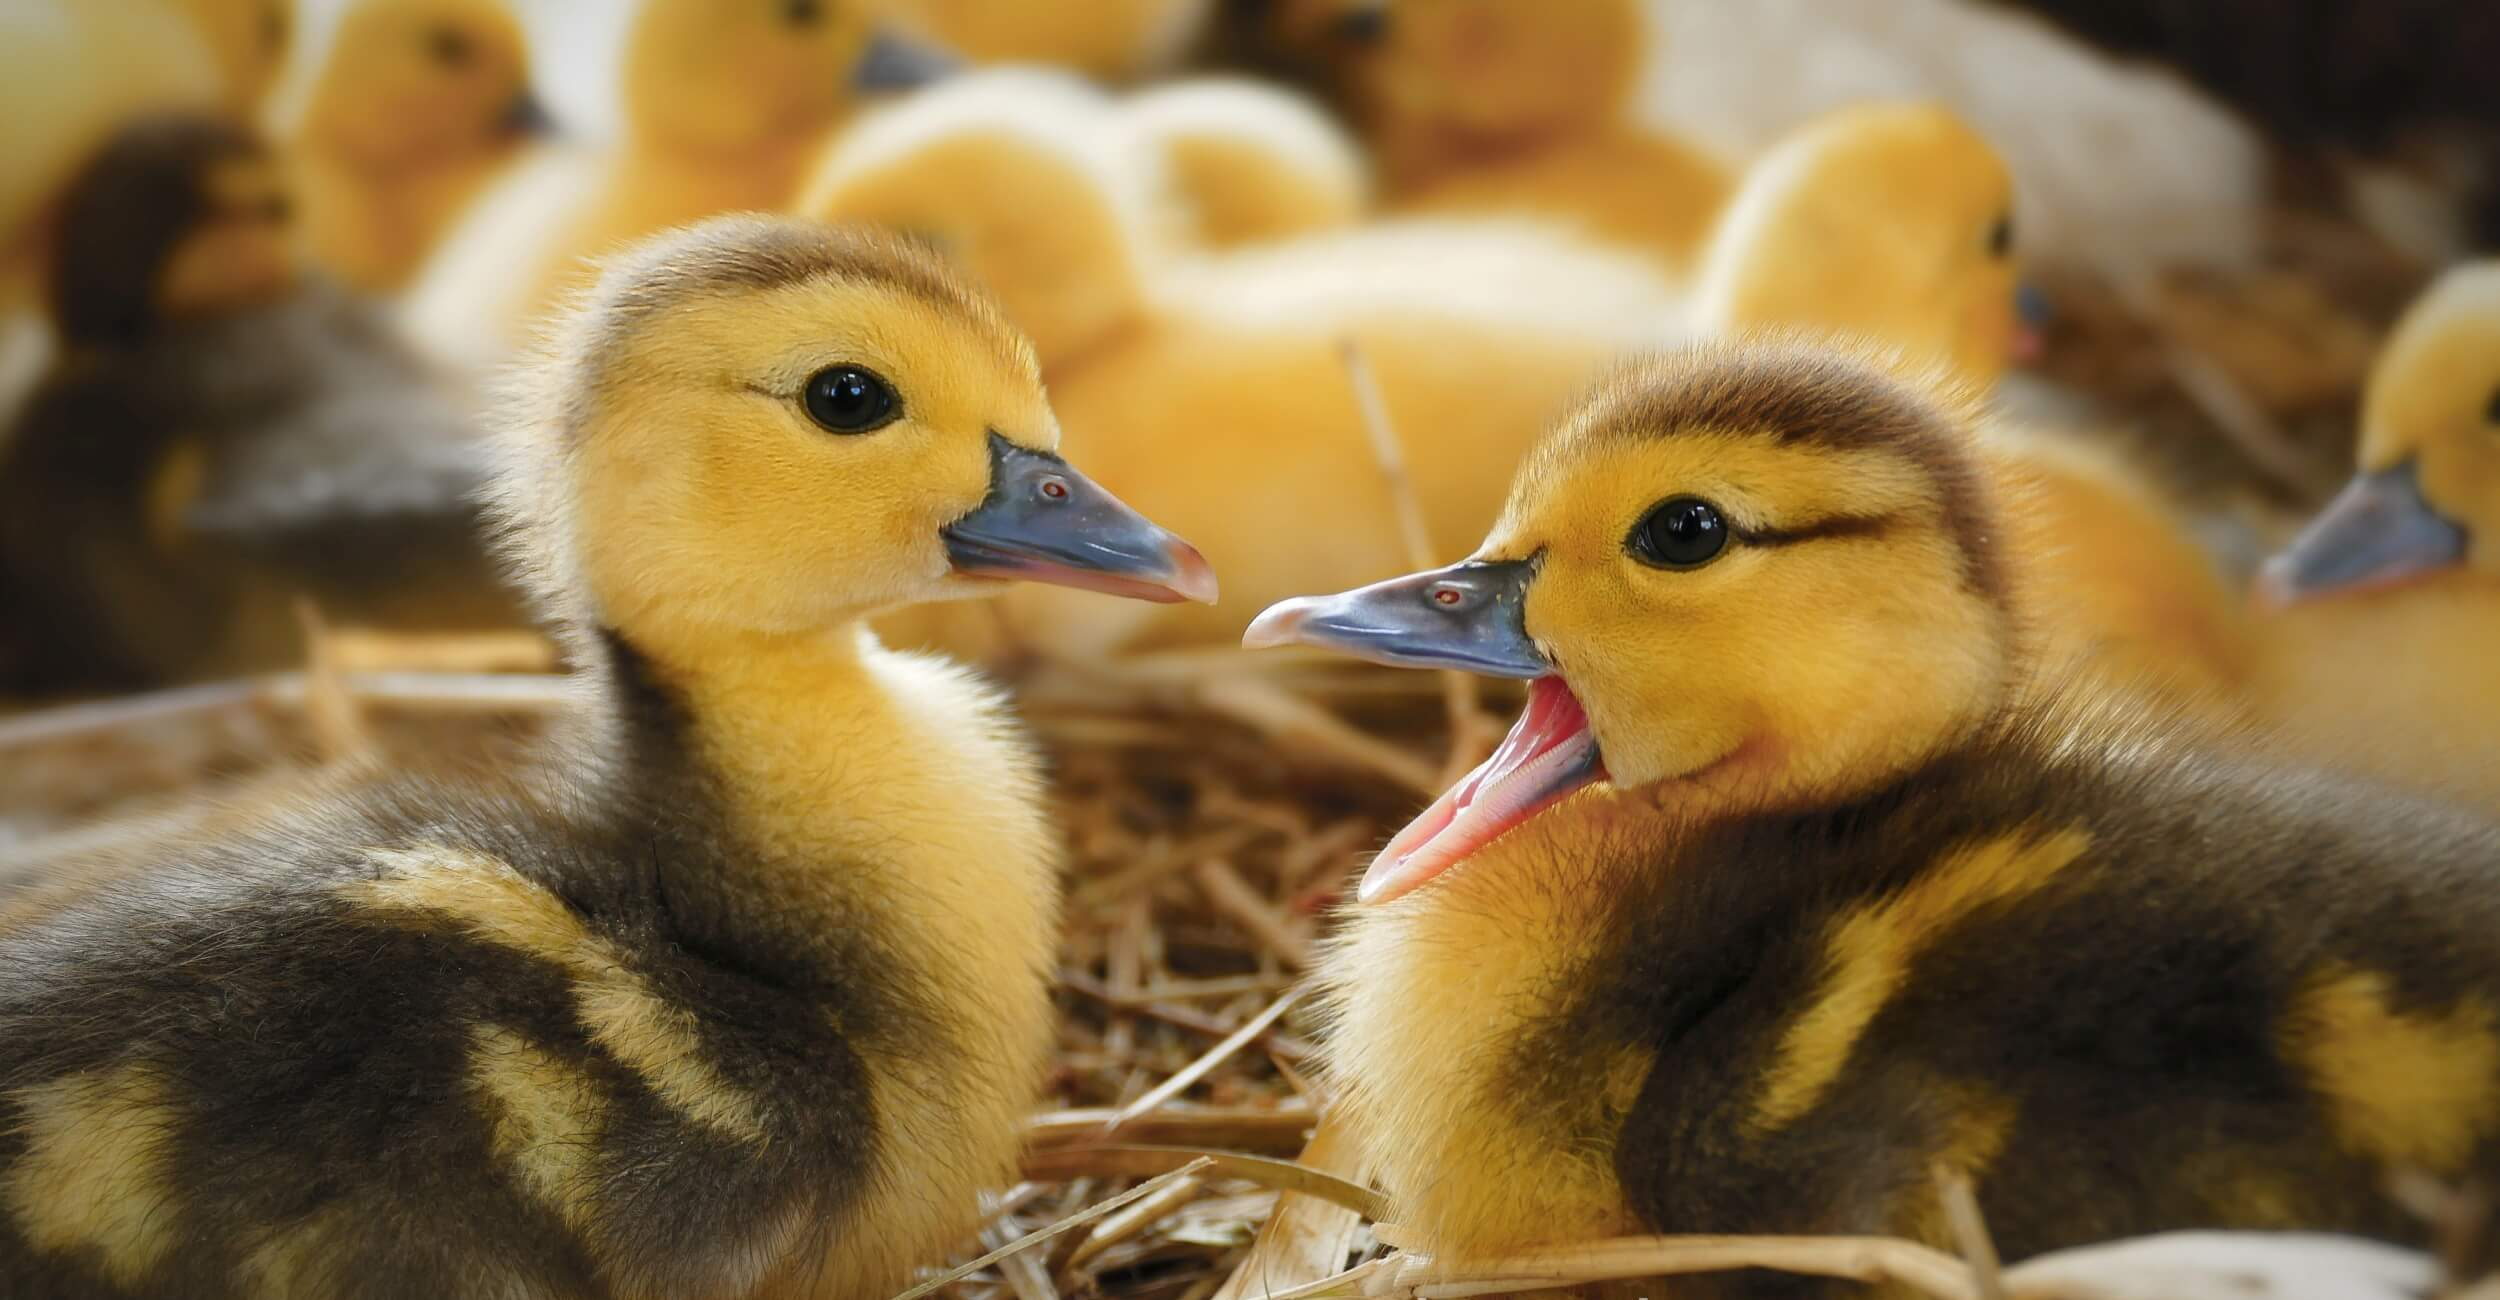 Beginner's Guide to Hatching Duck Eggs and Raising Ducklings